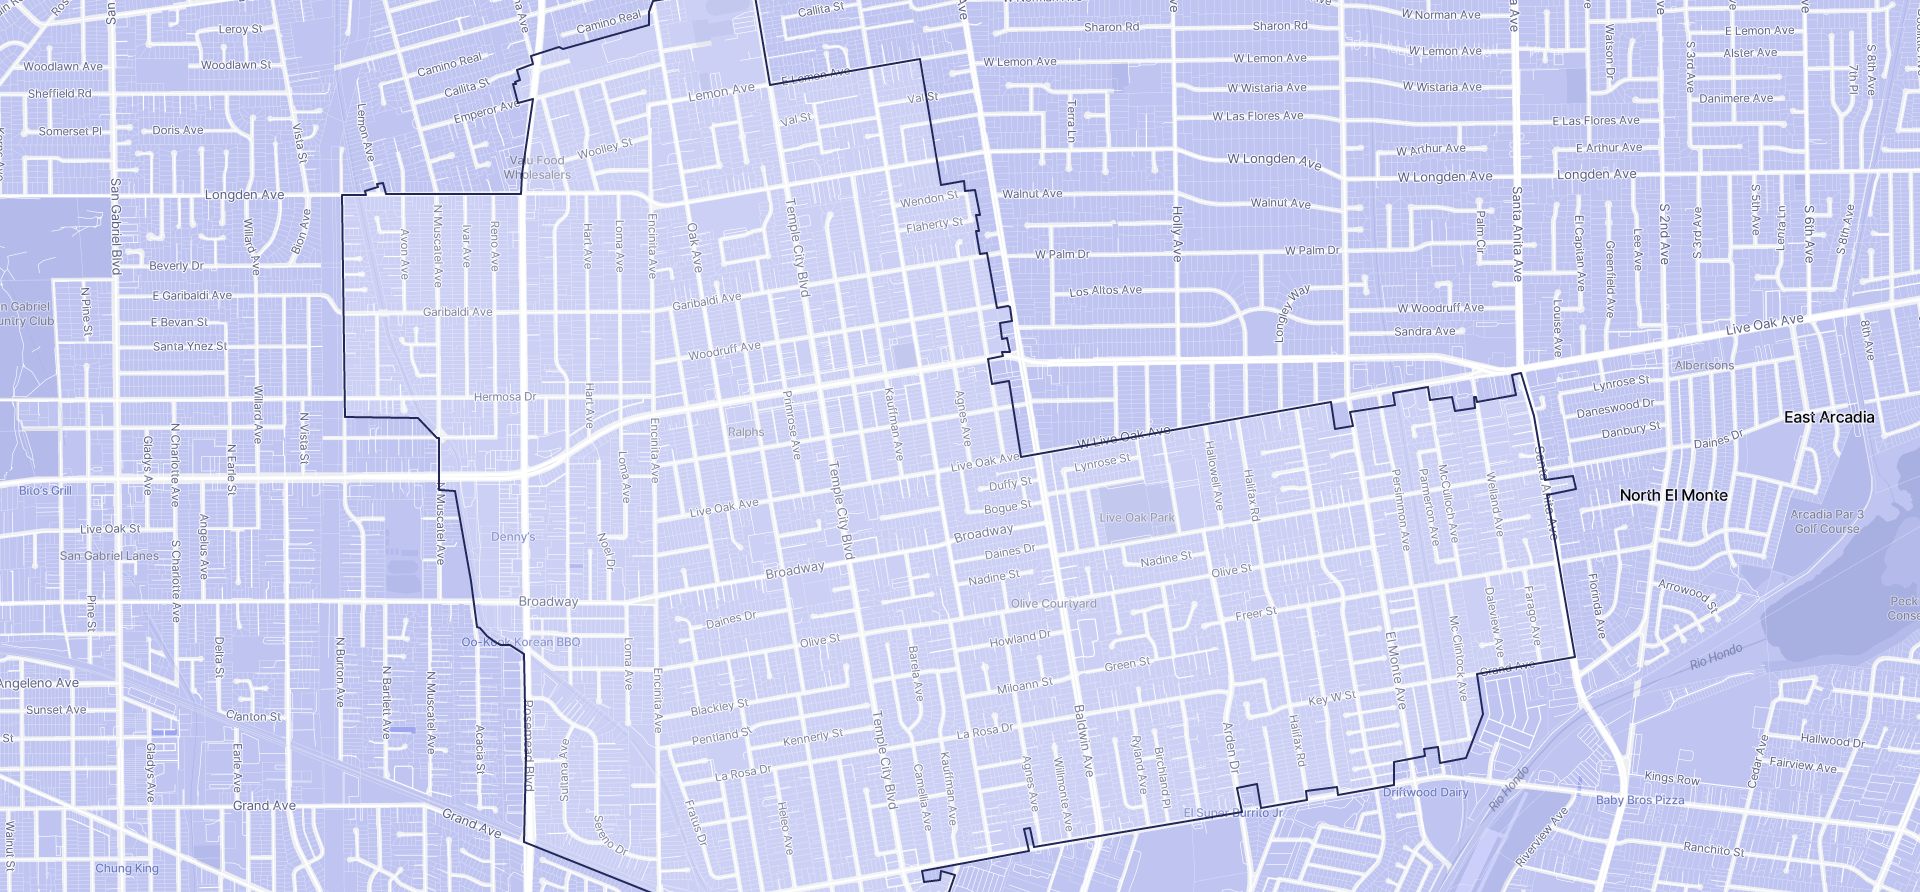 Image of Temple City boundaries on a map.